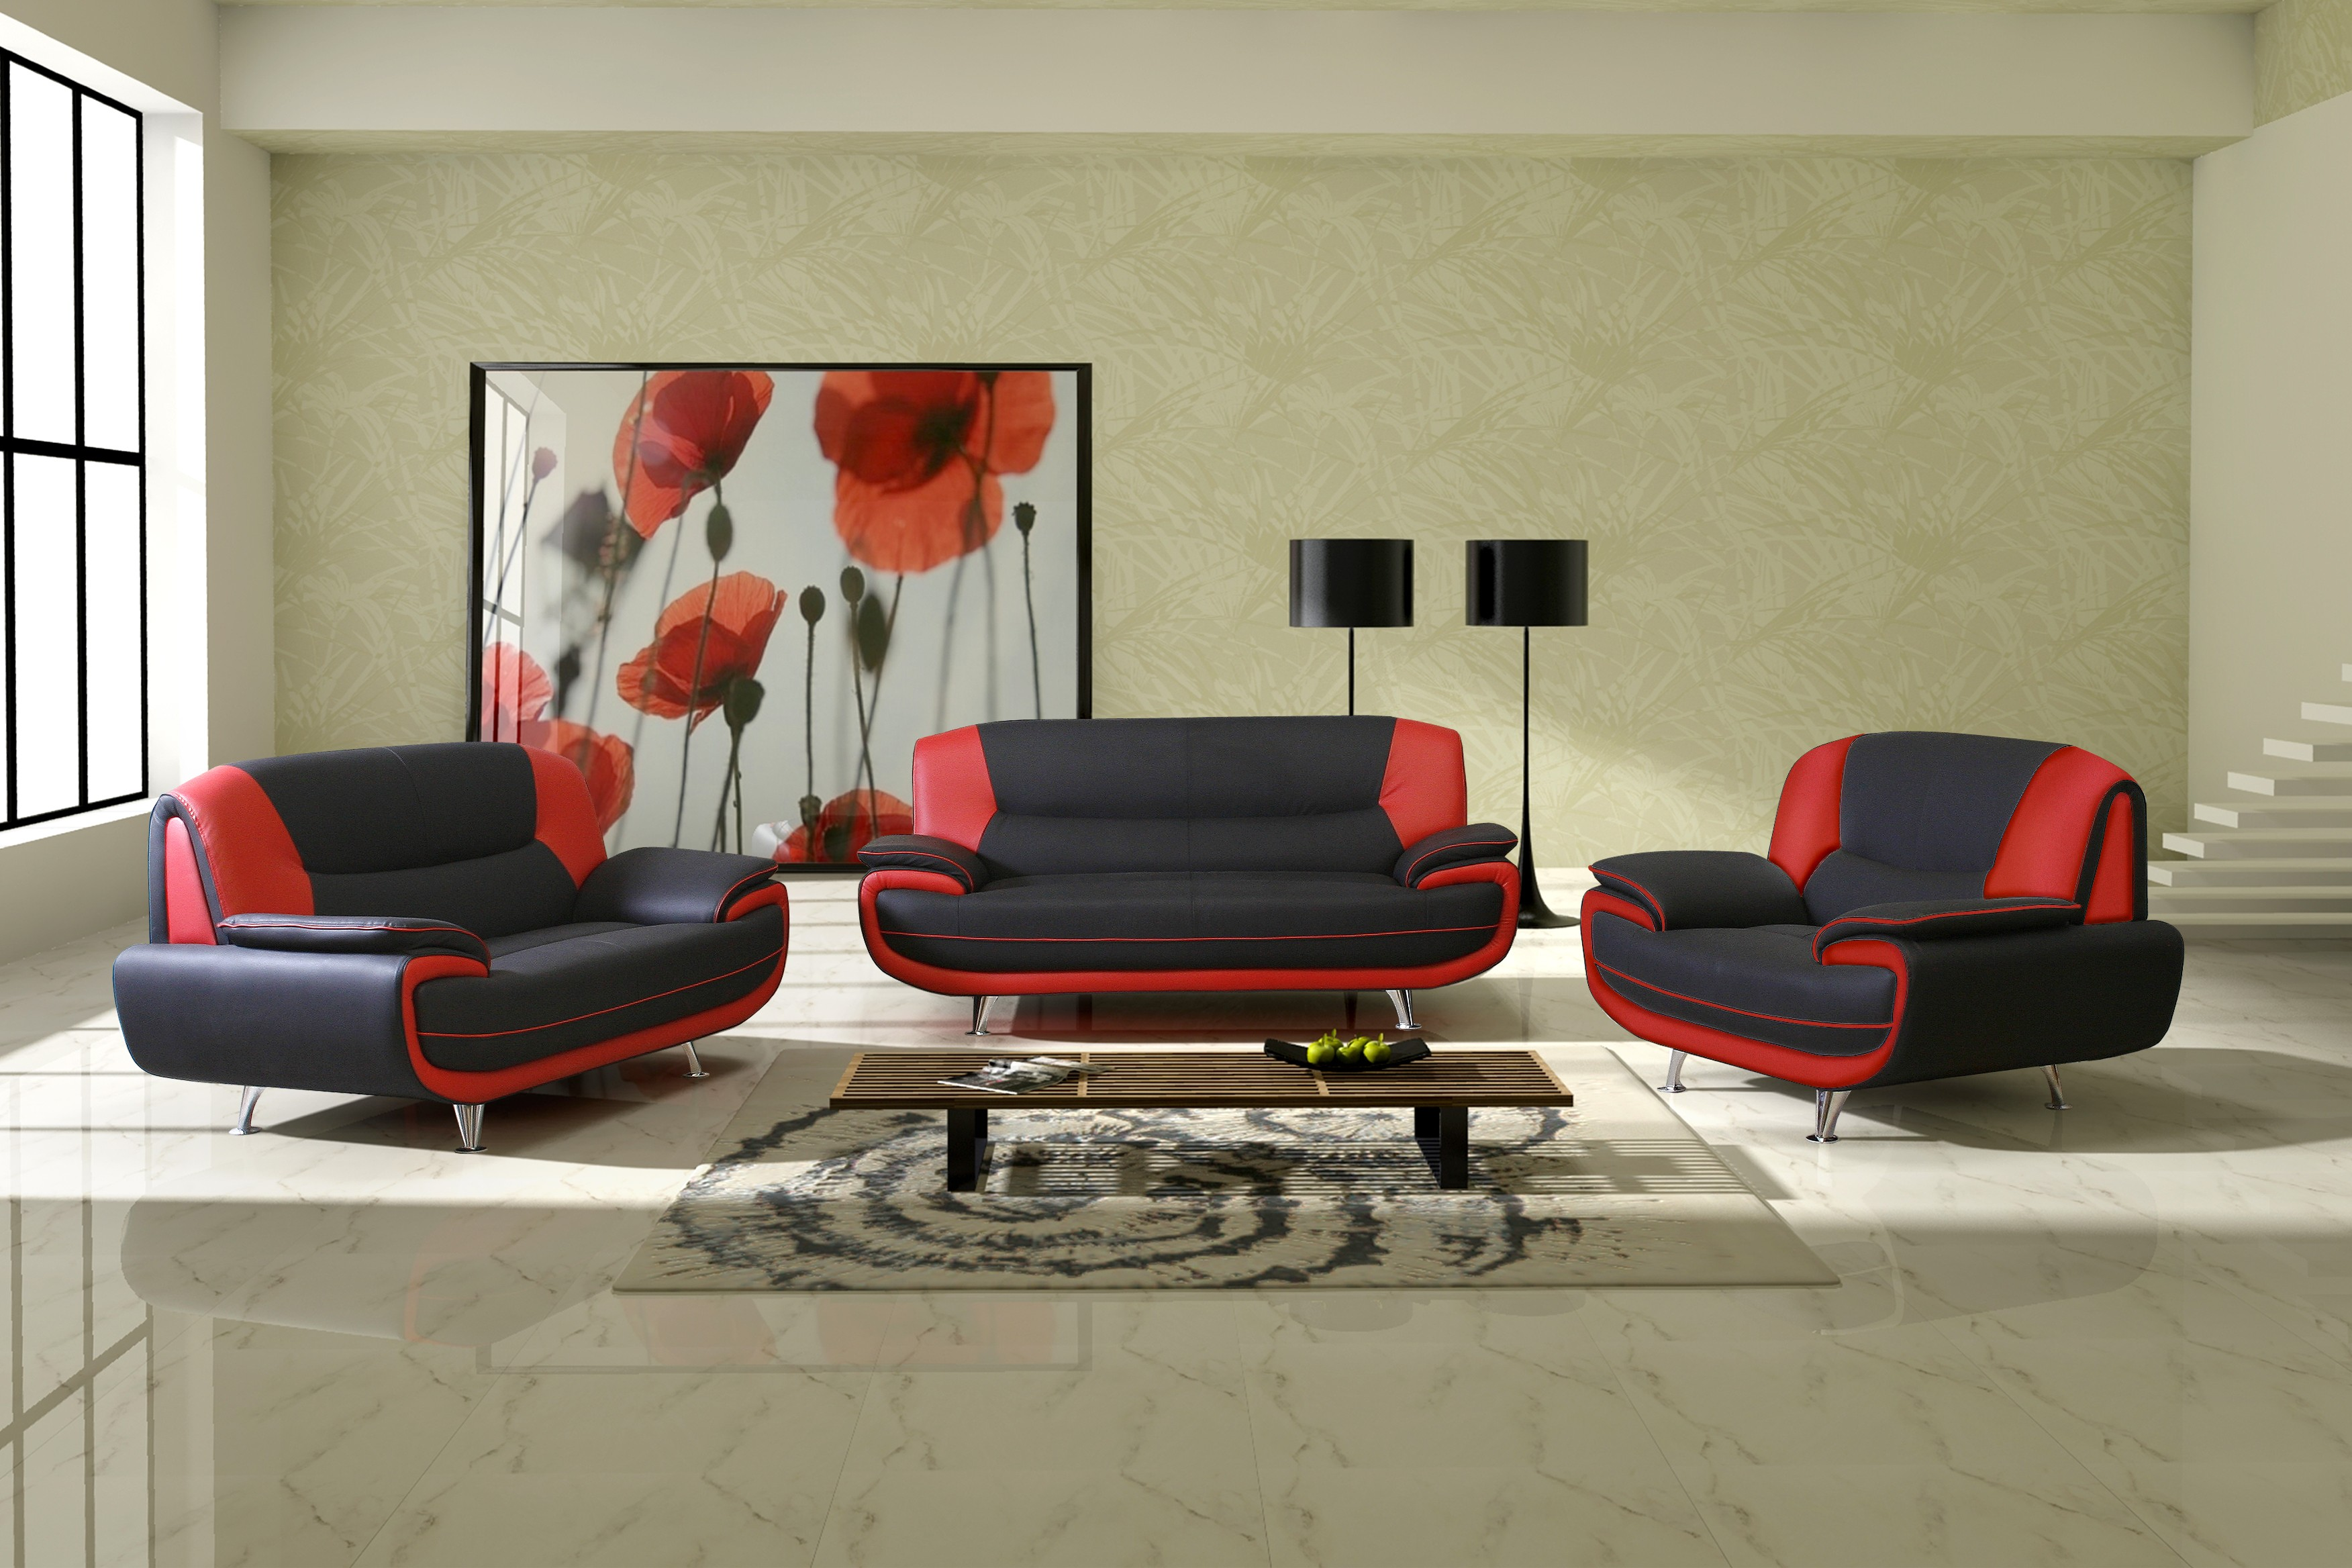 Genial Red And Black Sofa Set Designs